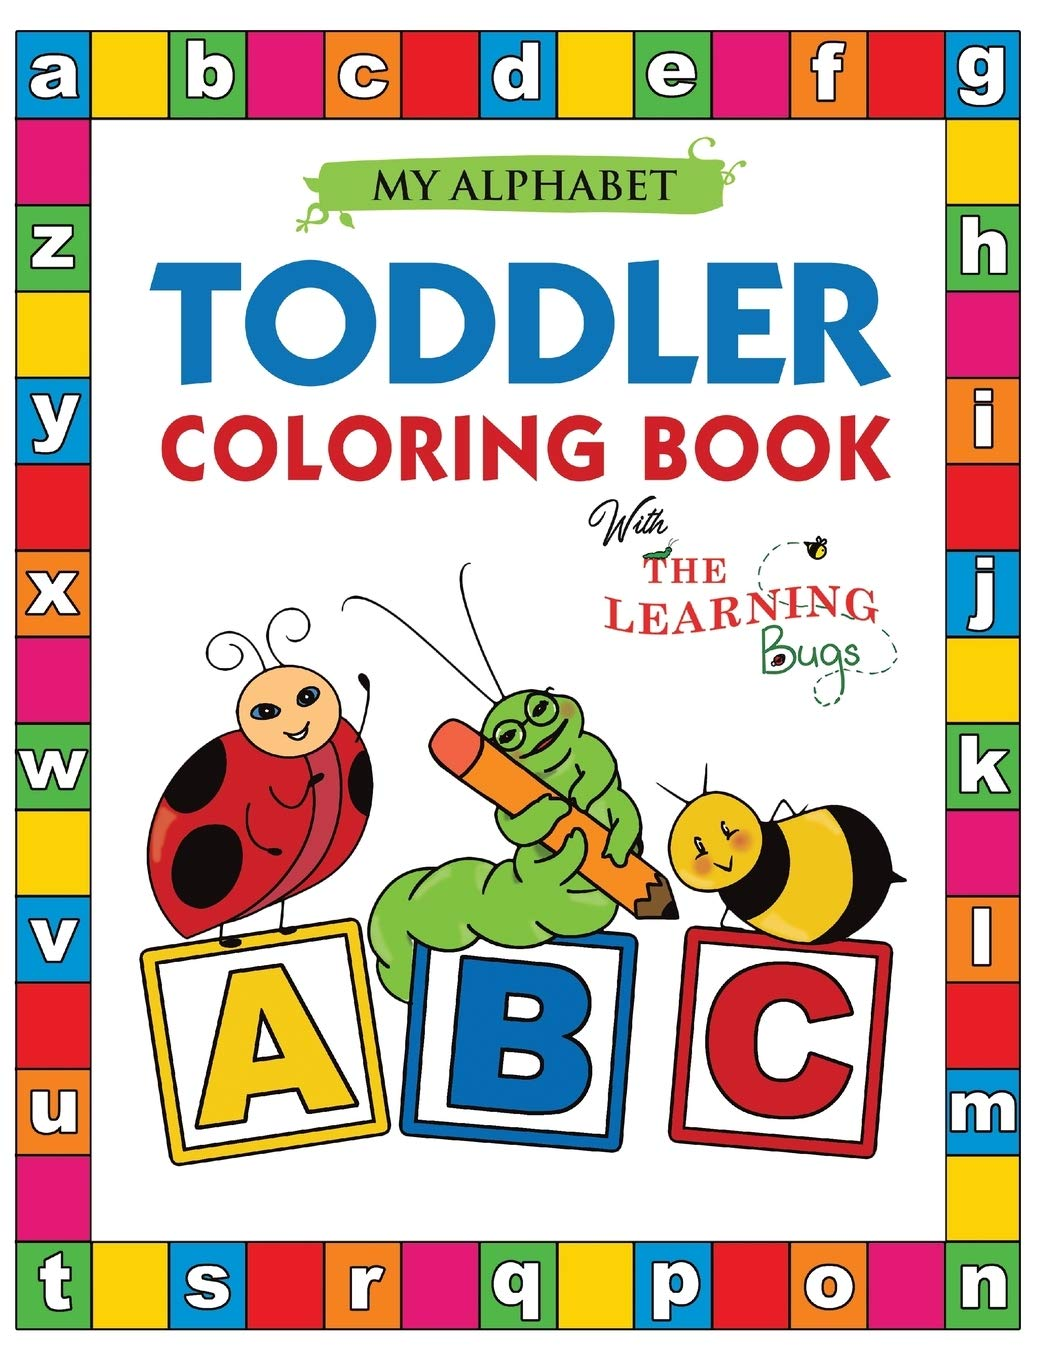 - Amazon.com: My Alphabet Toddler Coloring Book With The Learning